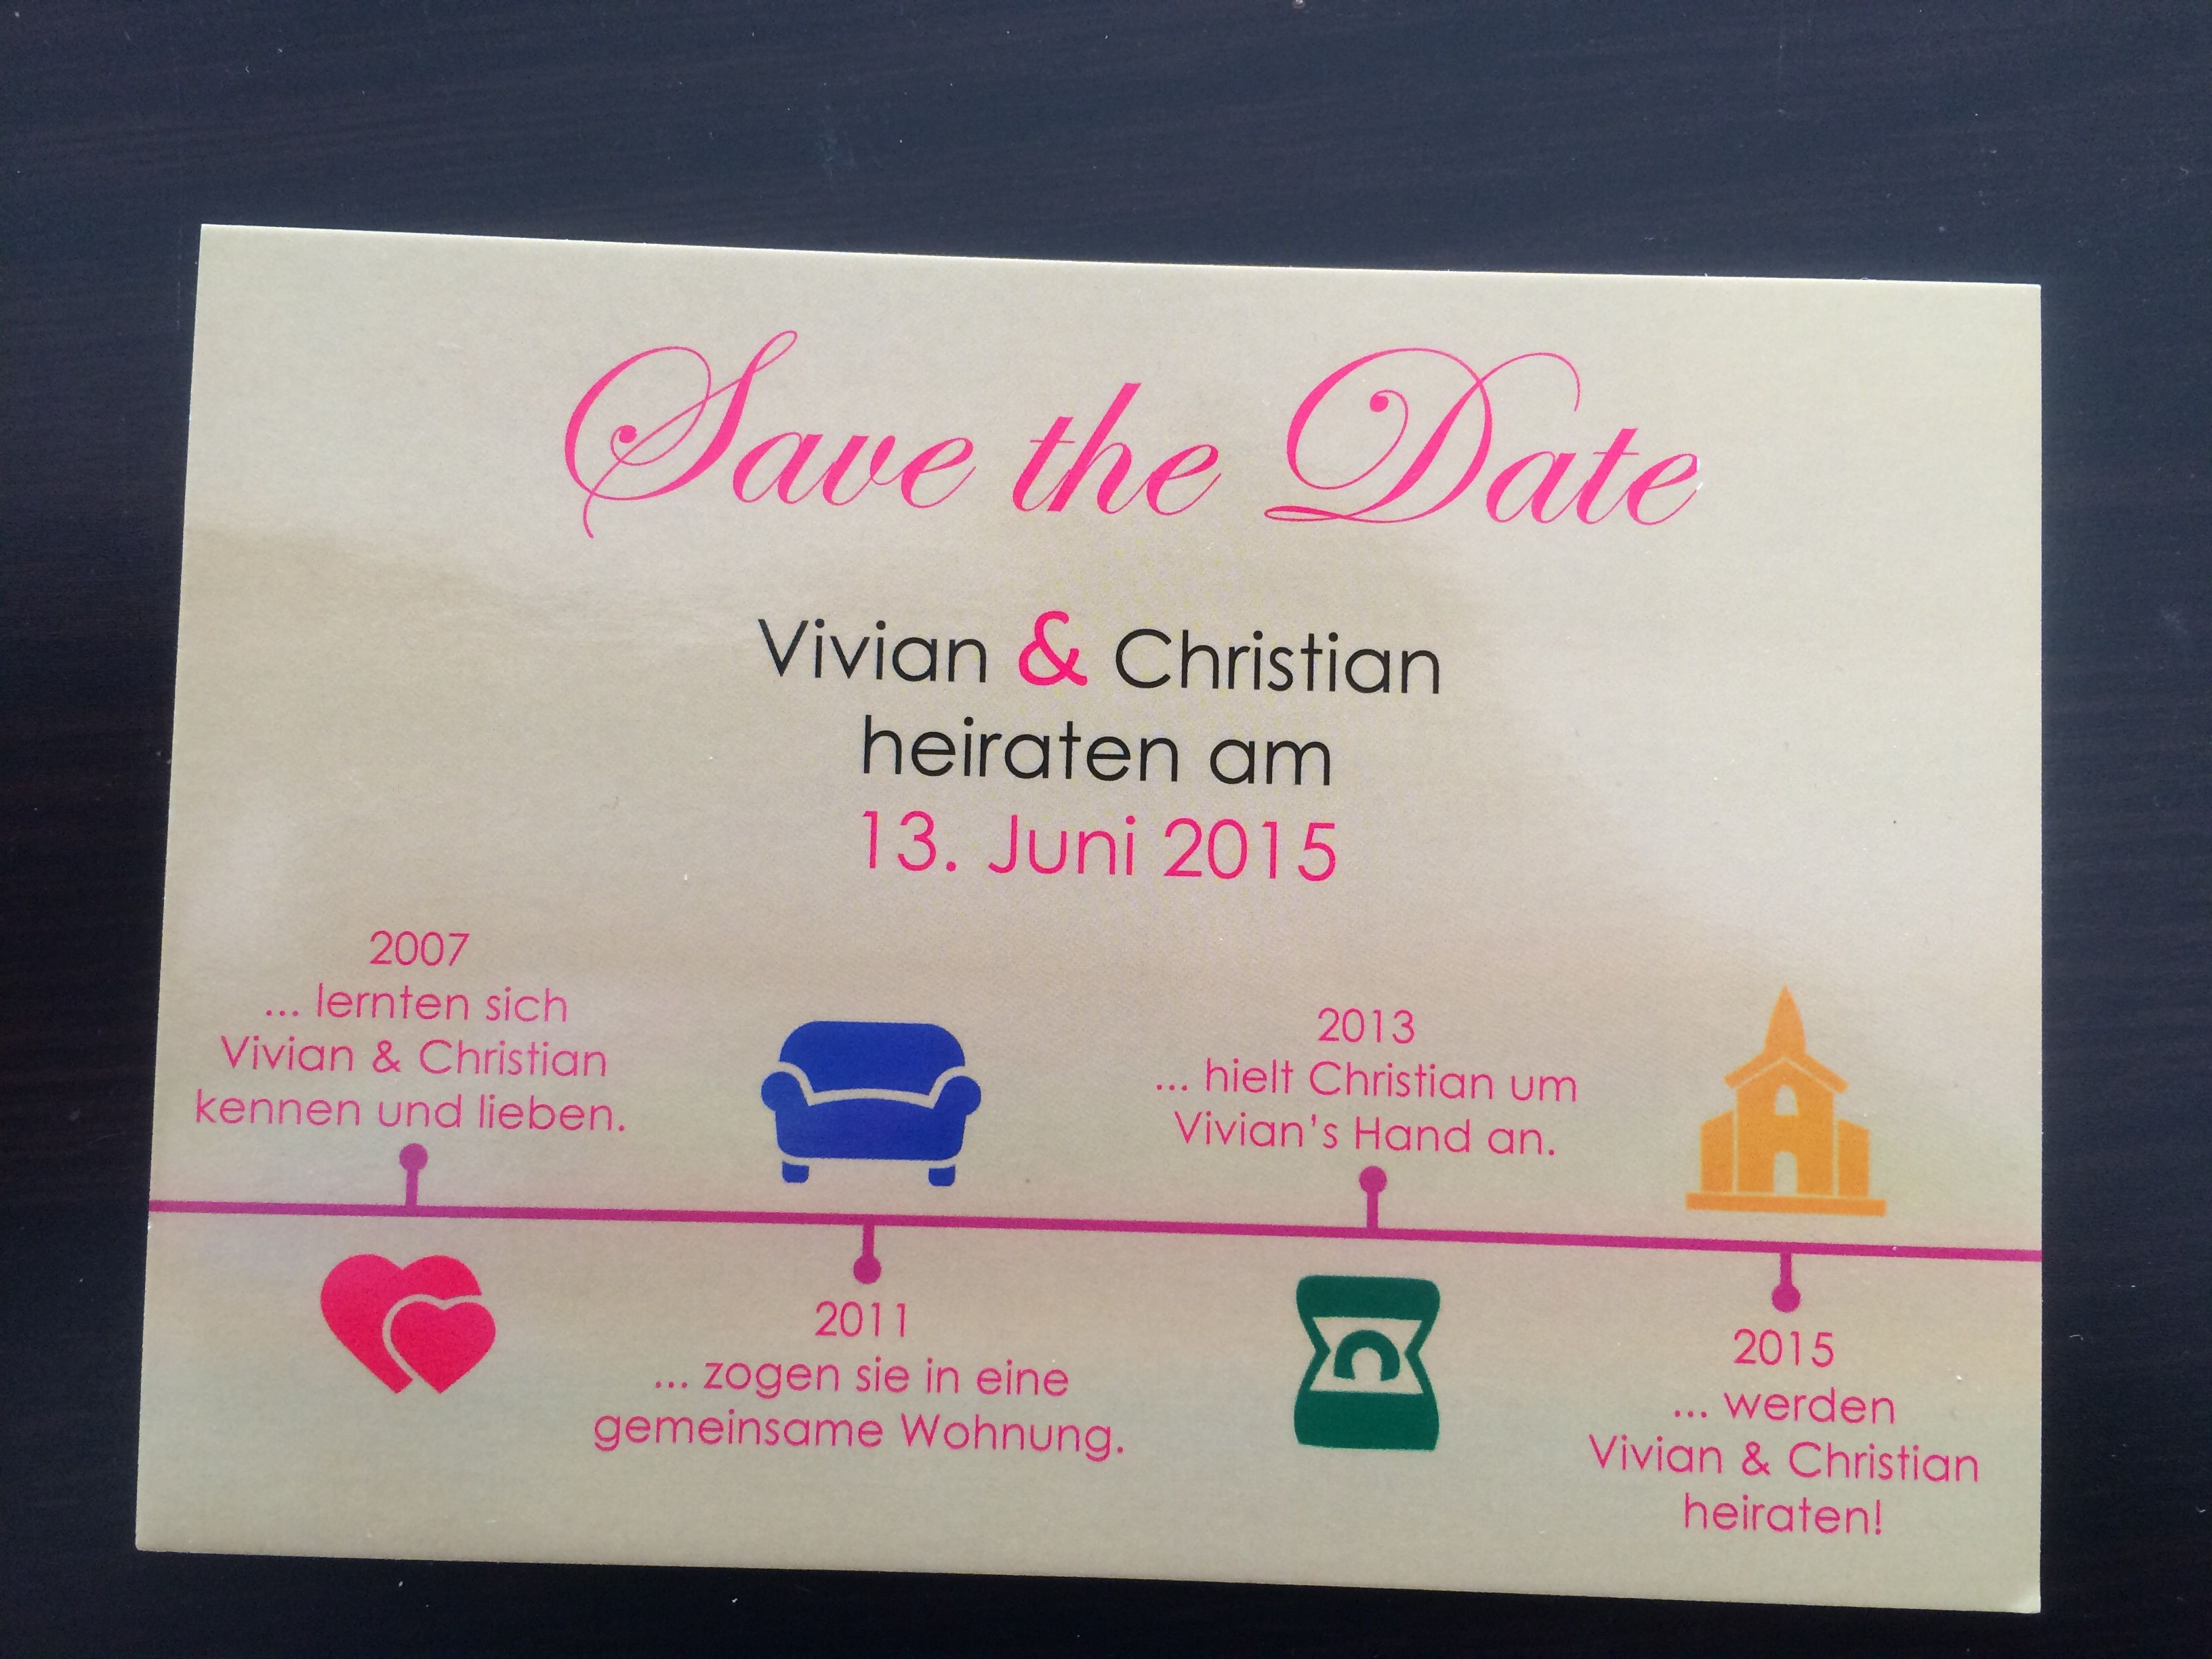 Save the Date card wedding 2015